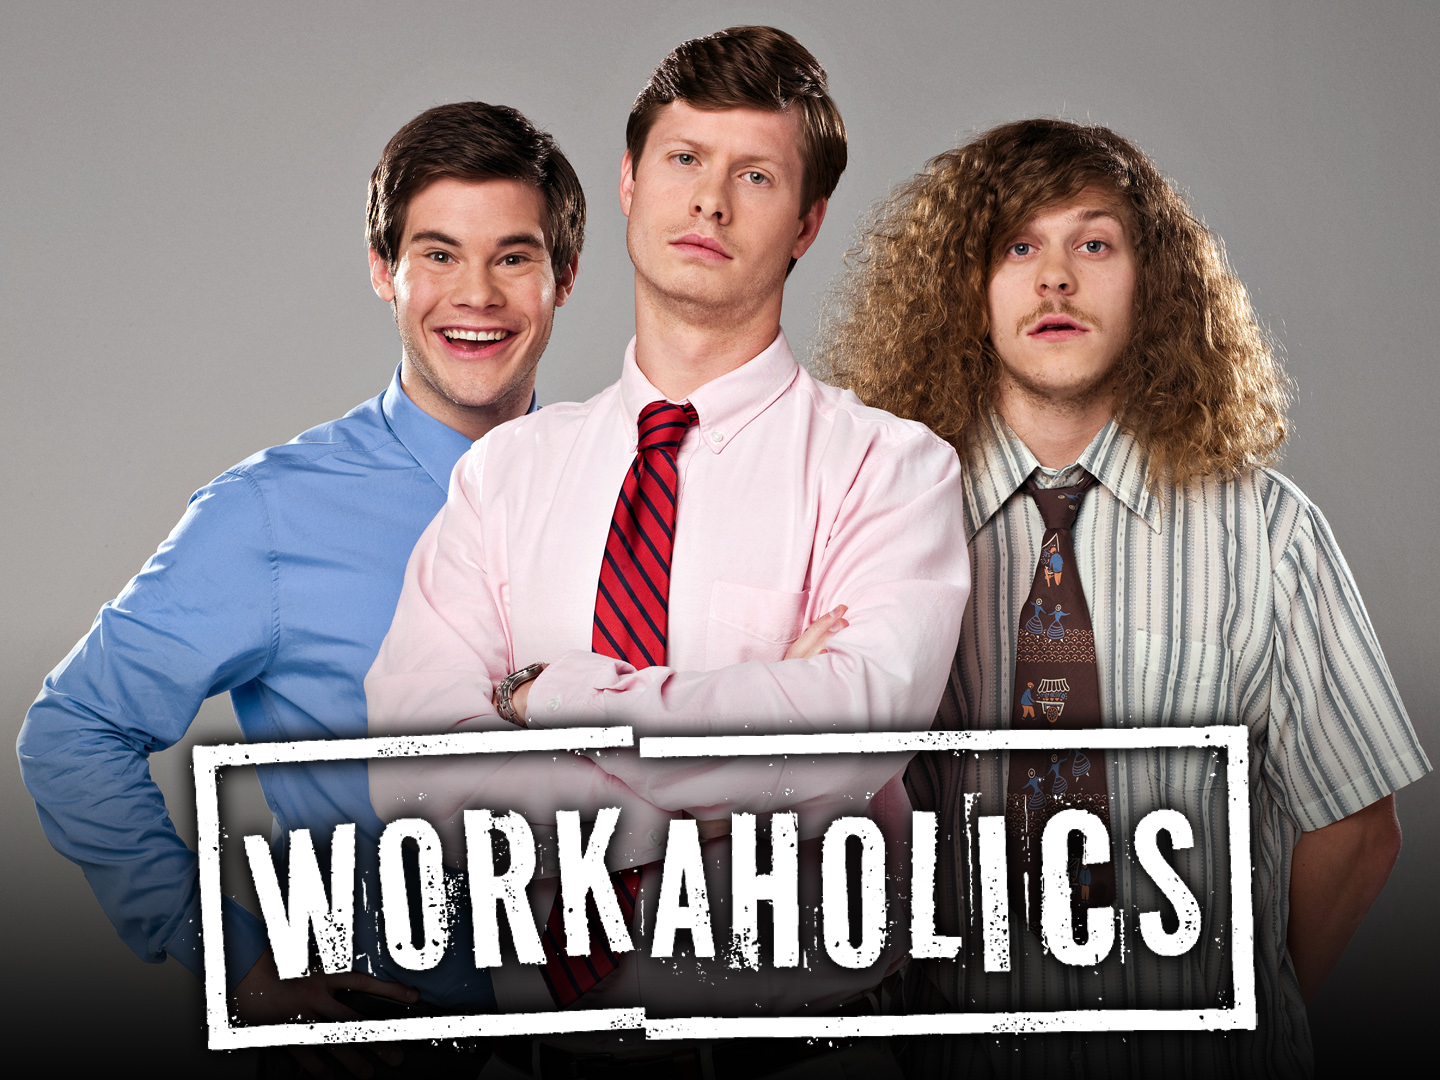 http://thepostculture.files.wordpress.com/2013/01/workaholics-13.jpg